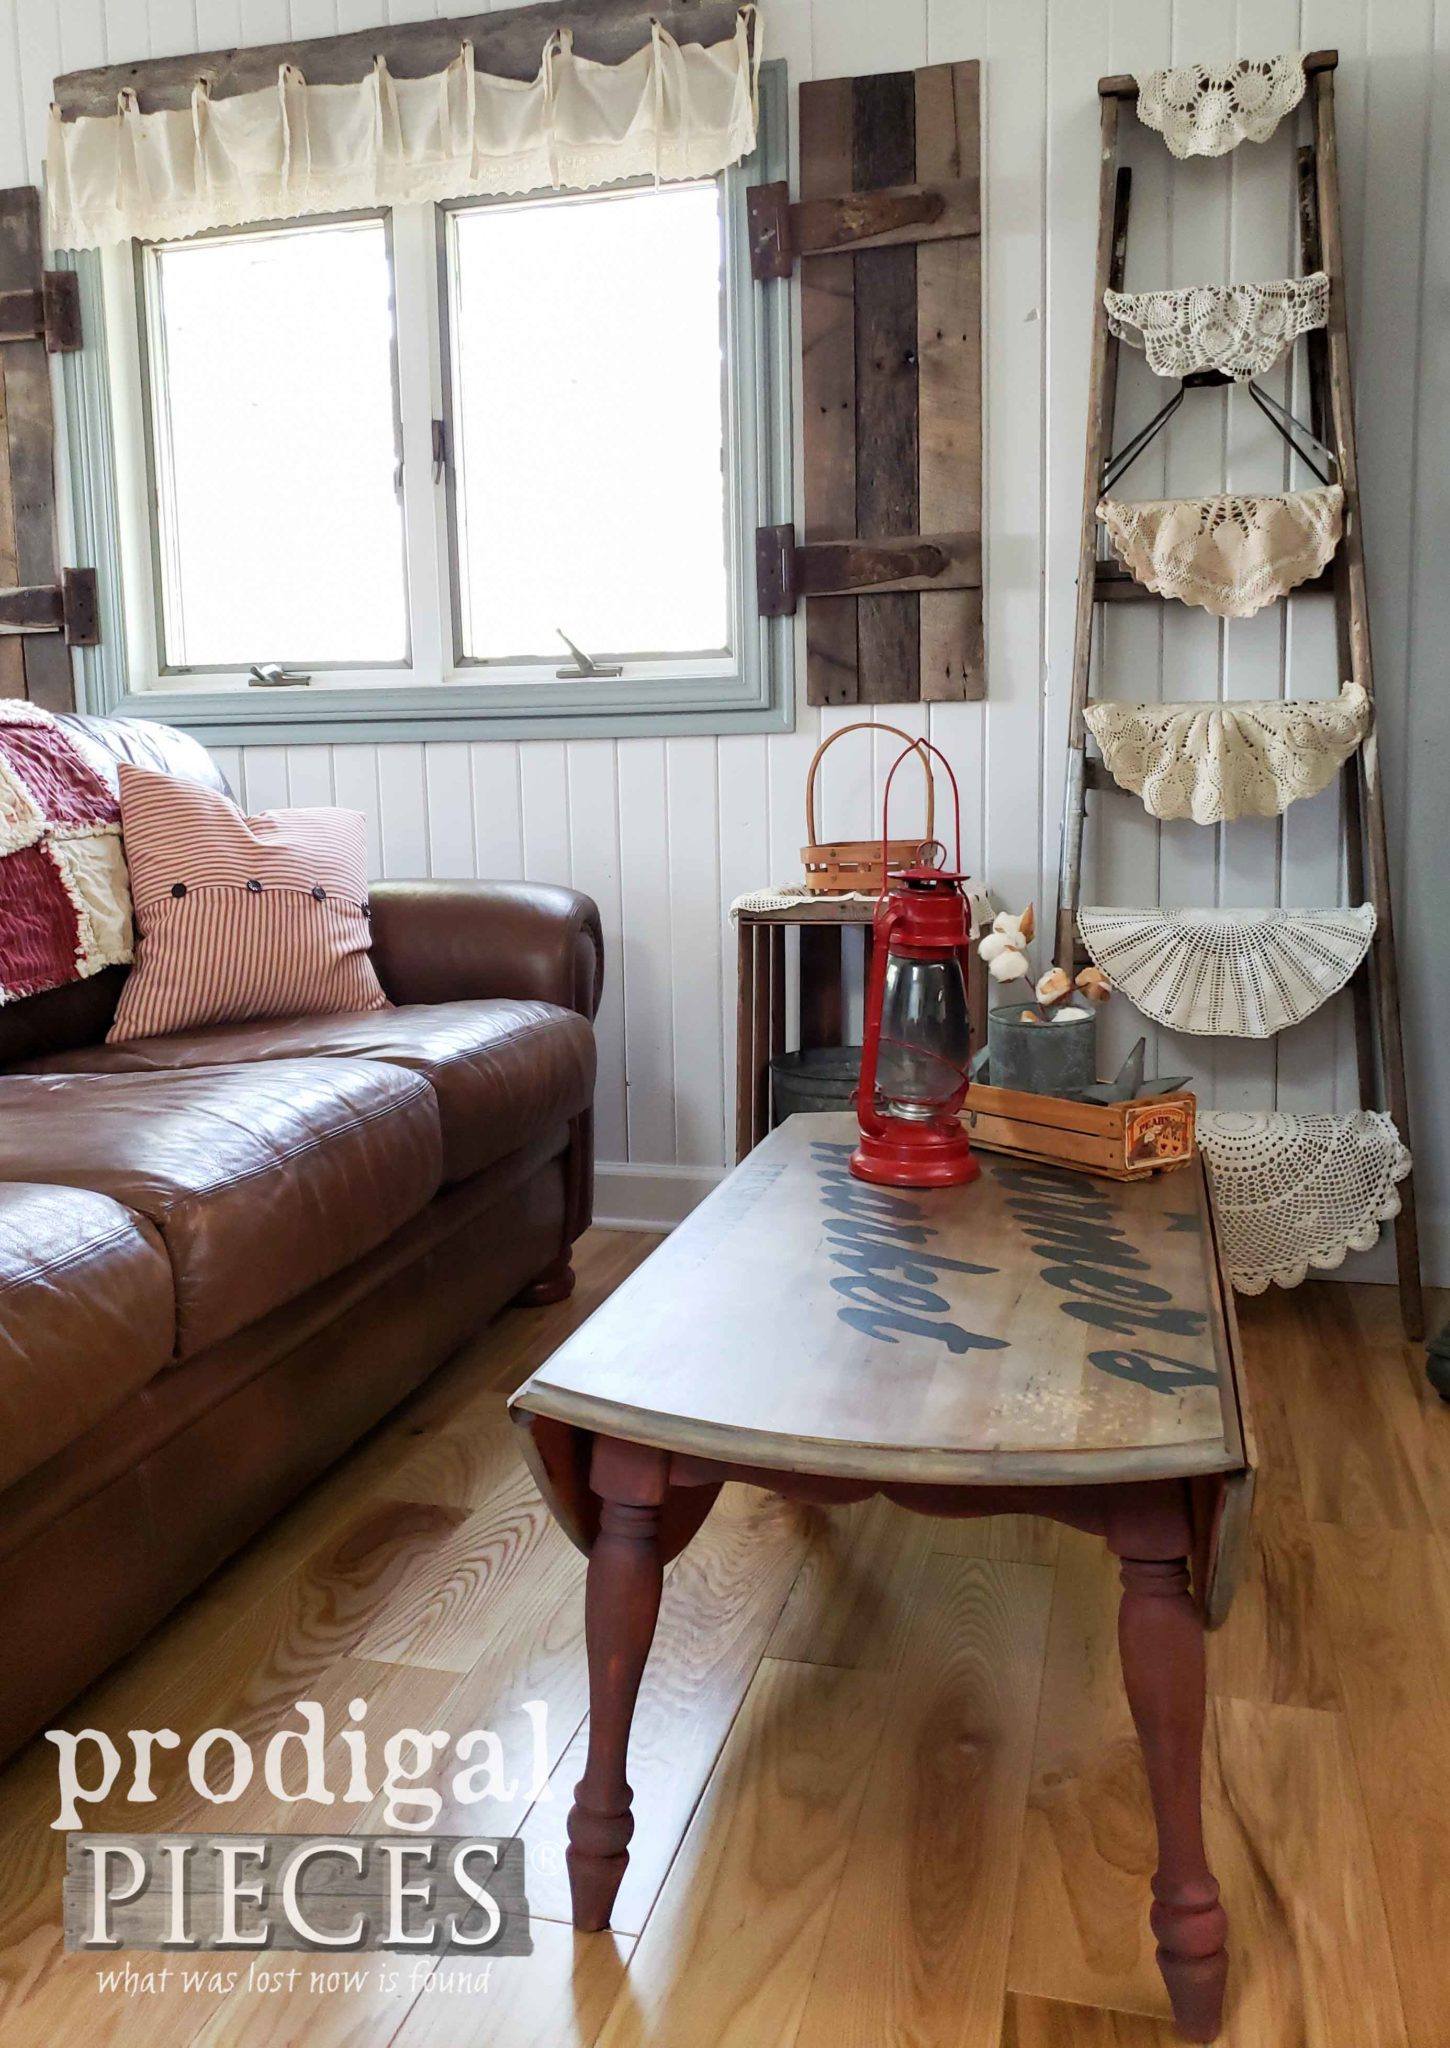 Rustic Farmhouse Living Room with Handmade Decor | See more at Prodigal Pieces | prodigalpieces.com #prodigalpieces #home #homedecor #furniture #vintage #farmhouse